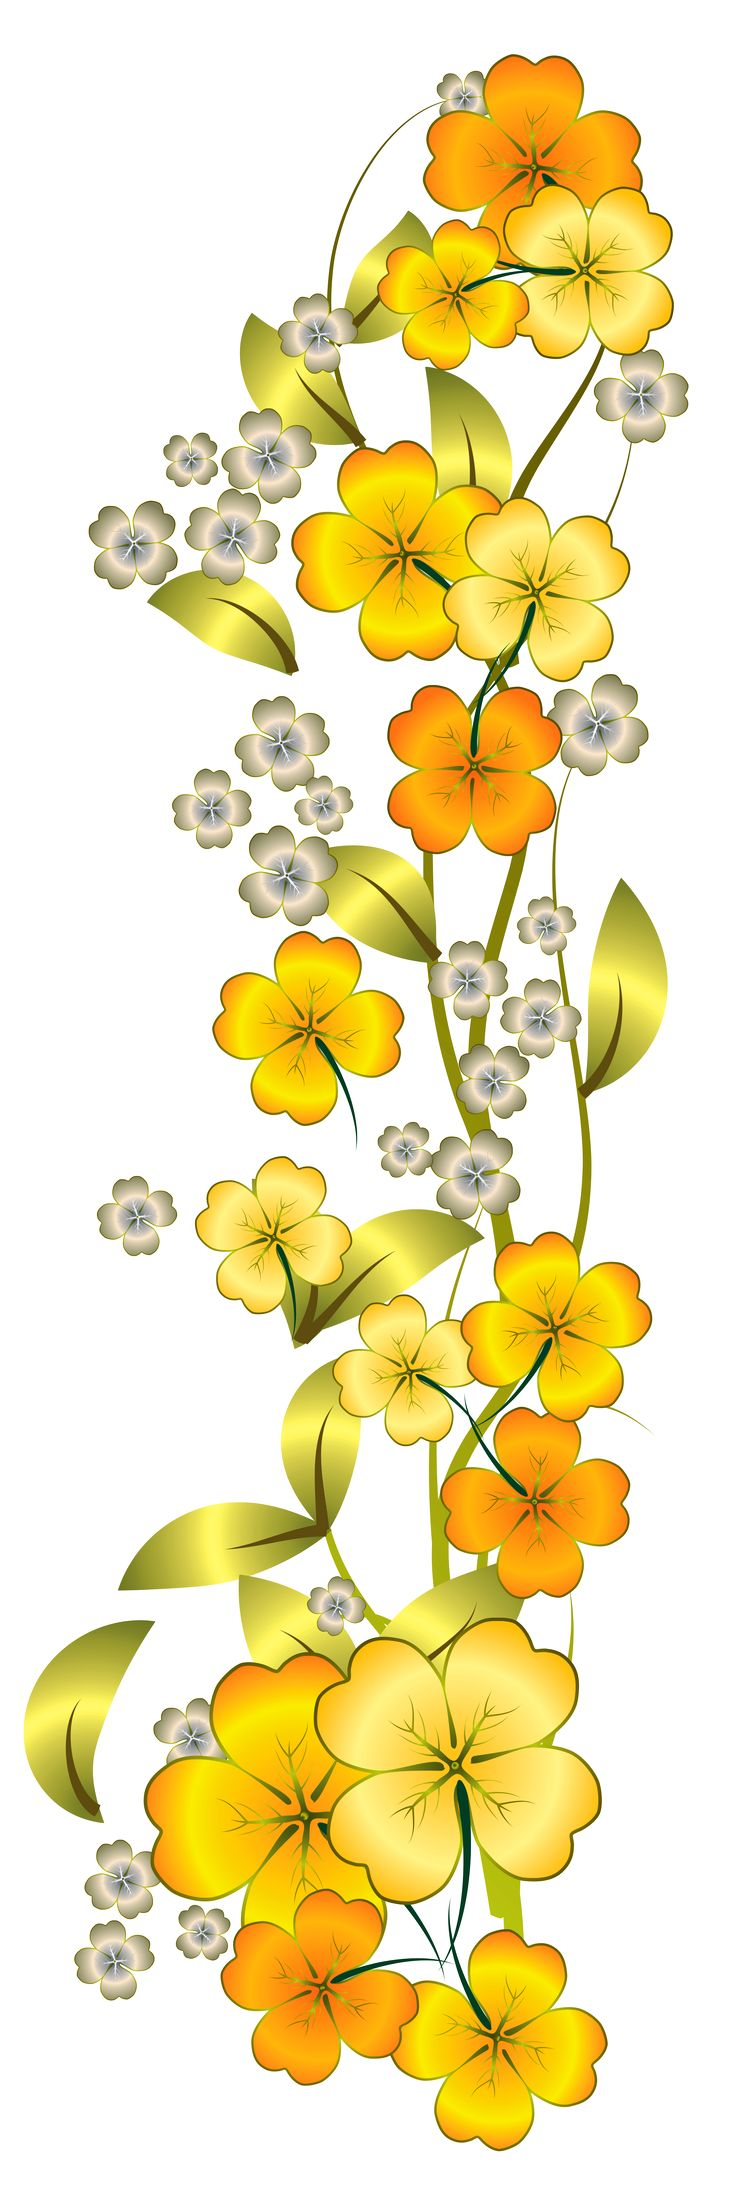 Easter clipart tall flower png clip freeuse 884 best ideas about Printables!!...•´¯`•.¸¸.εïз on Pinterest ... clip freeuse